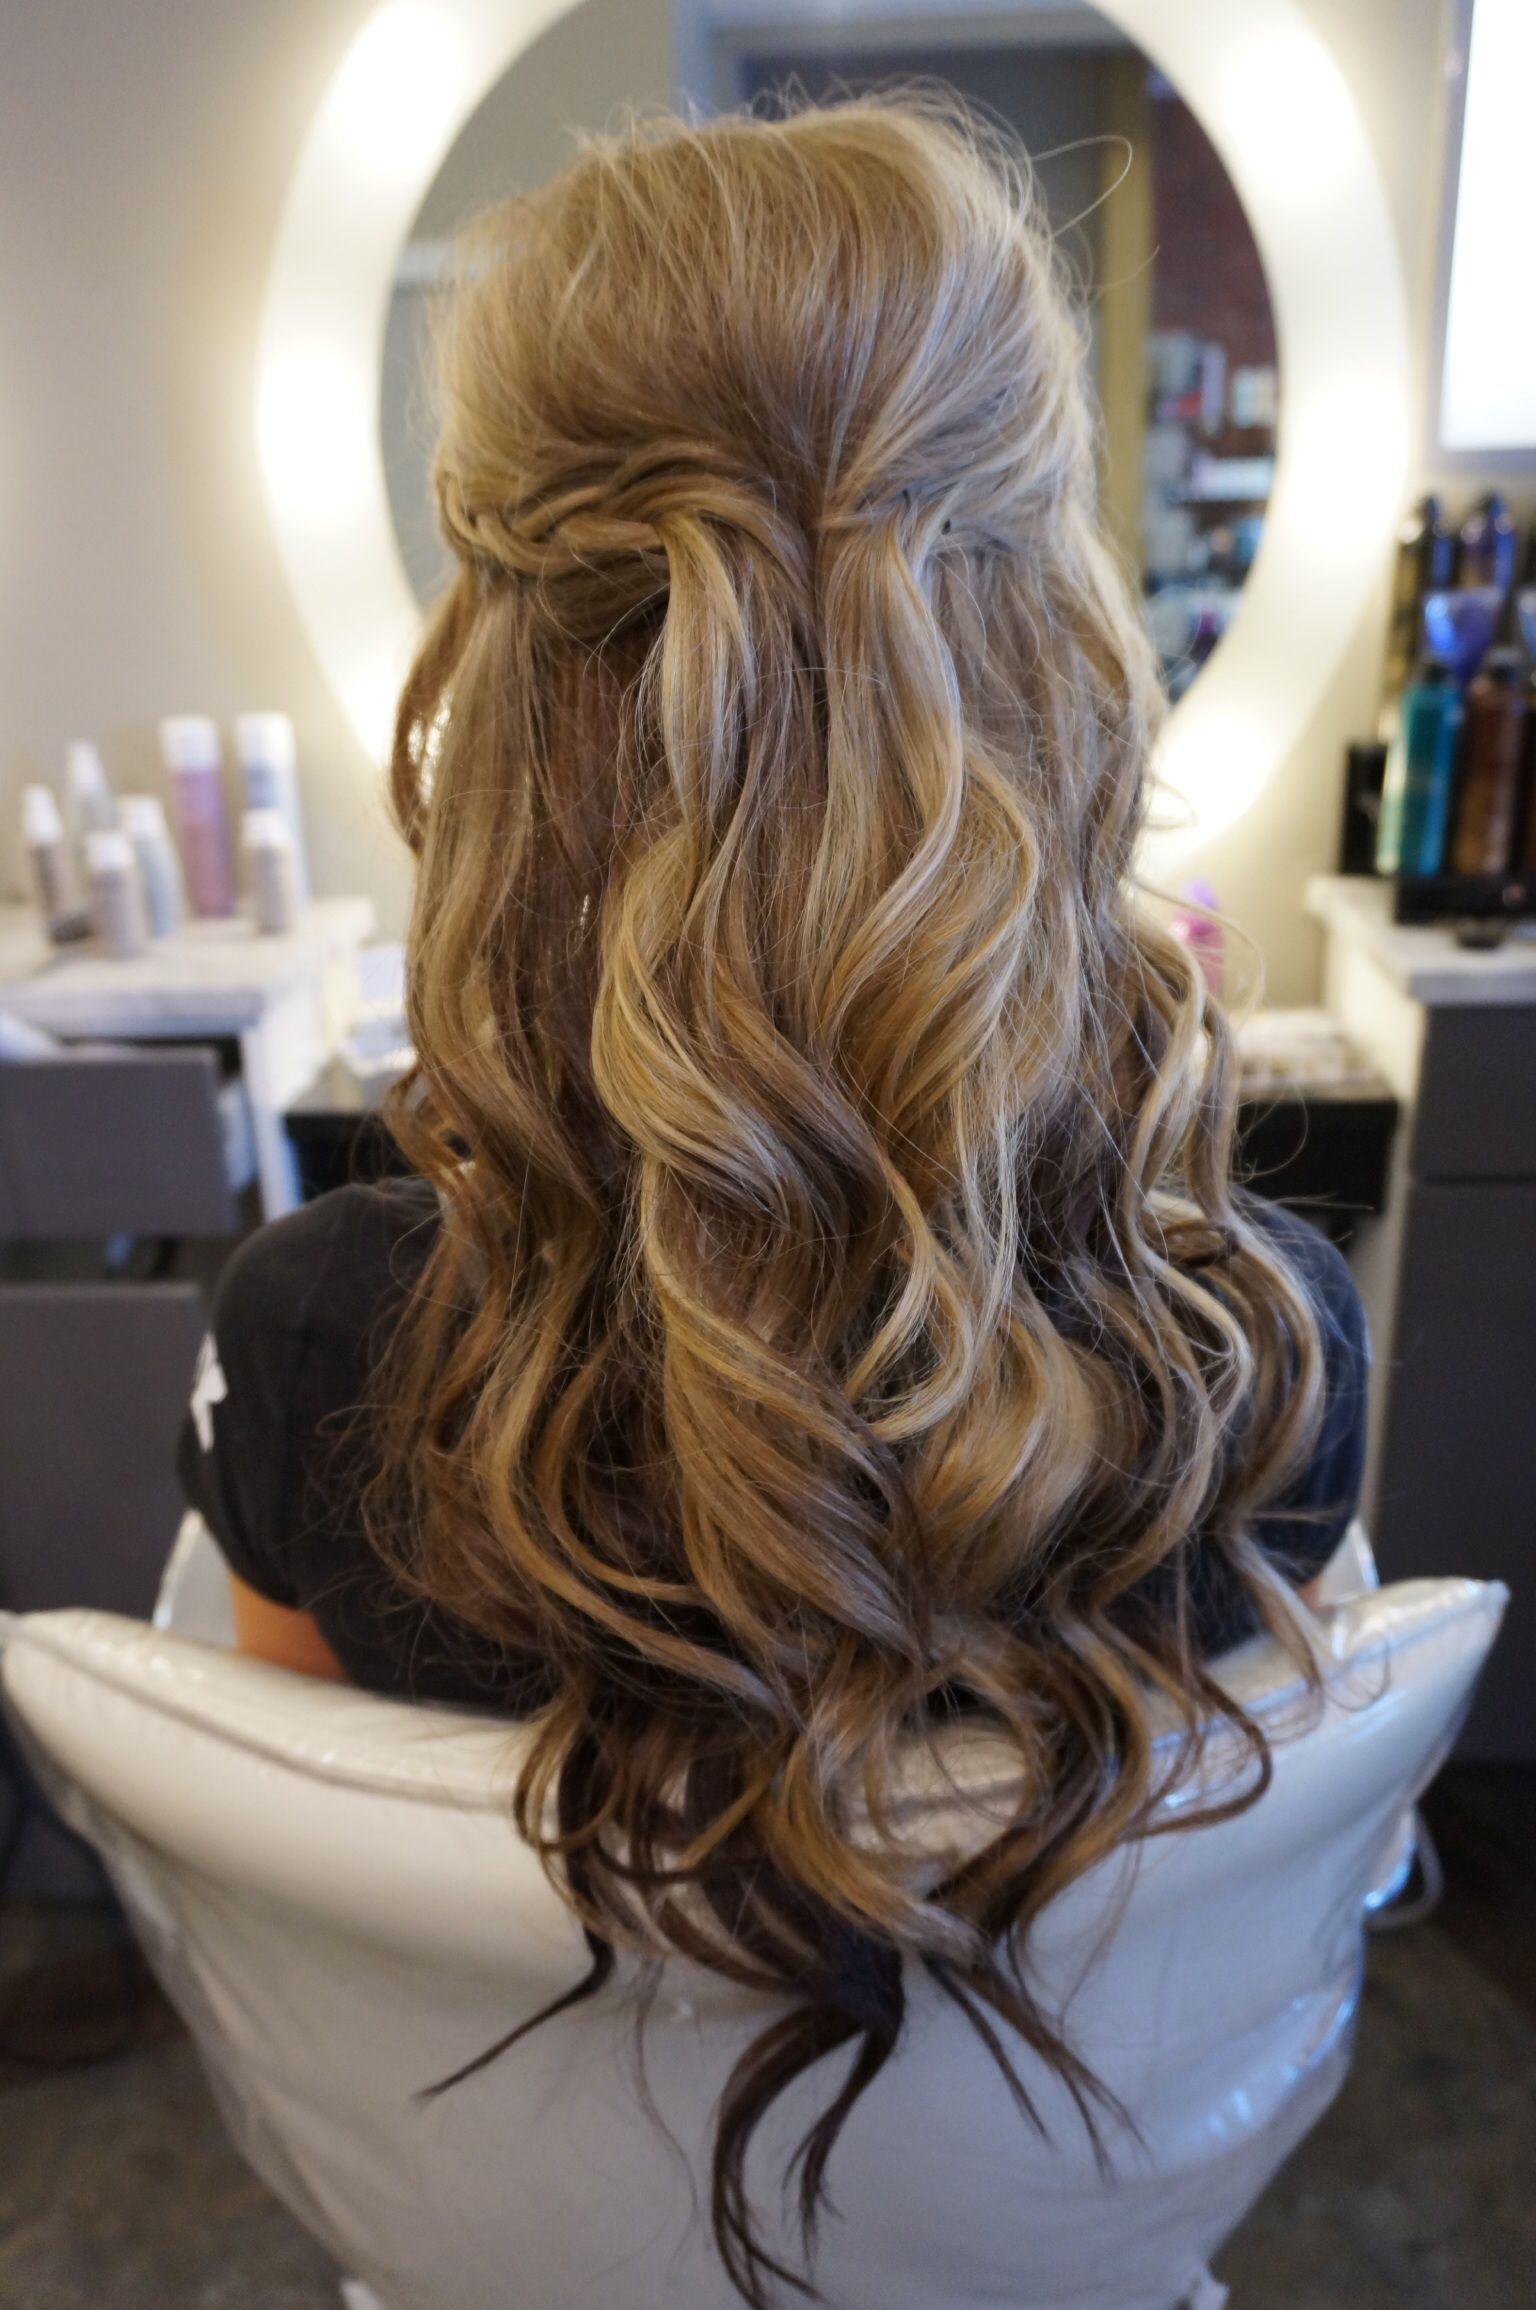 Long hair with loose curls perfect half up half down style ...